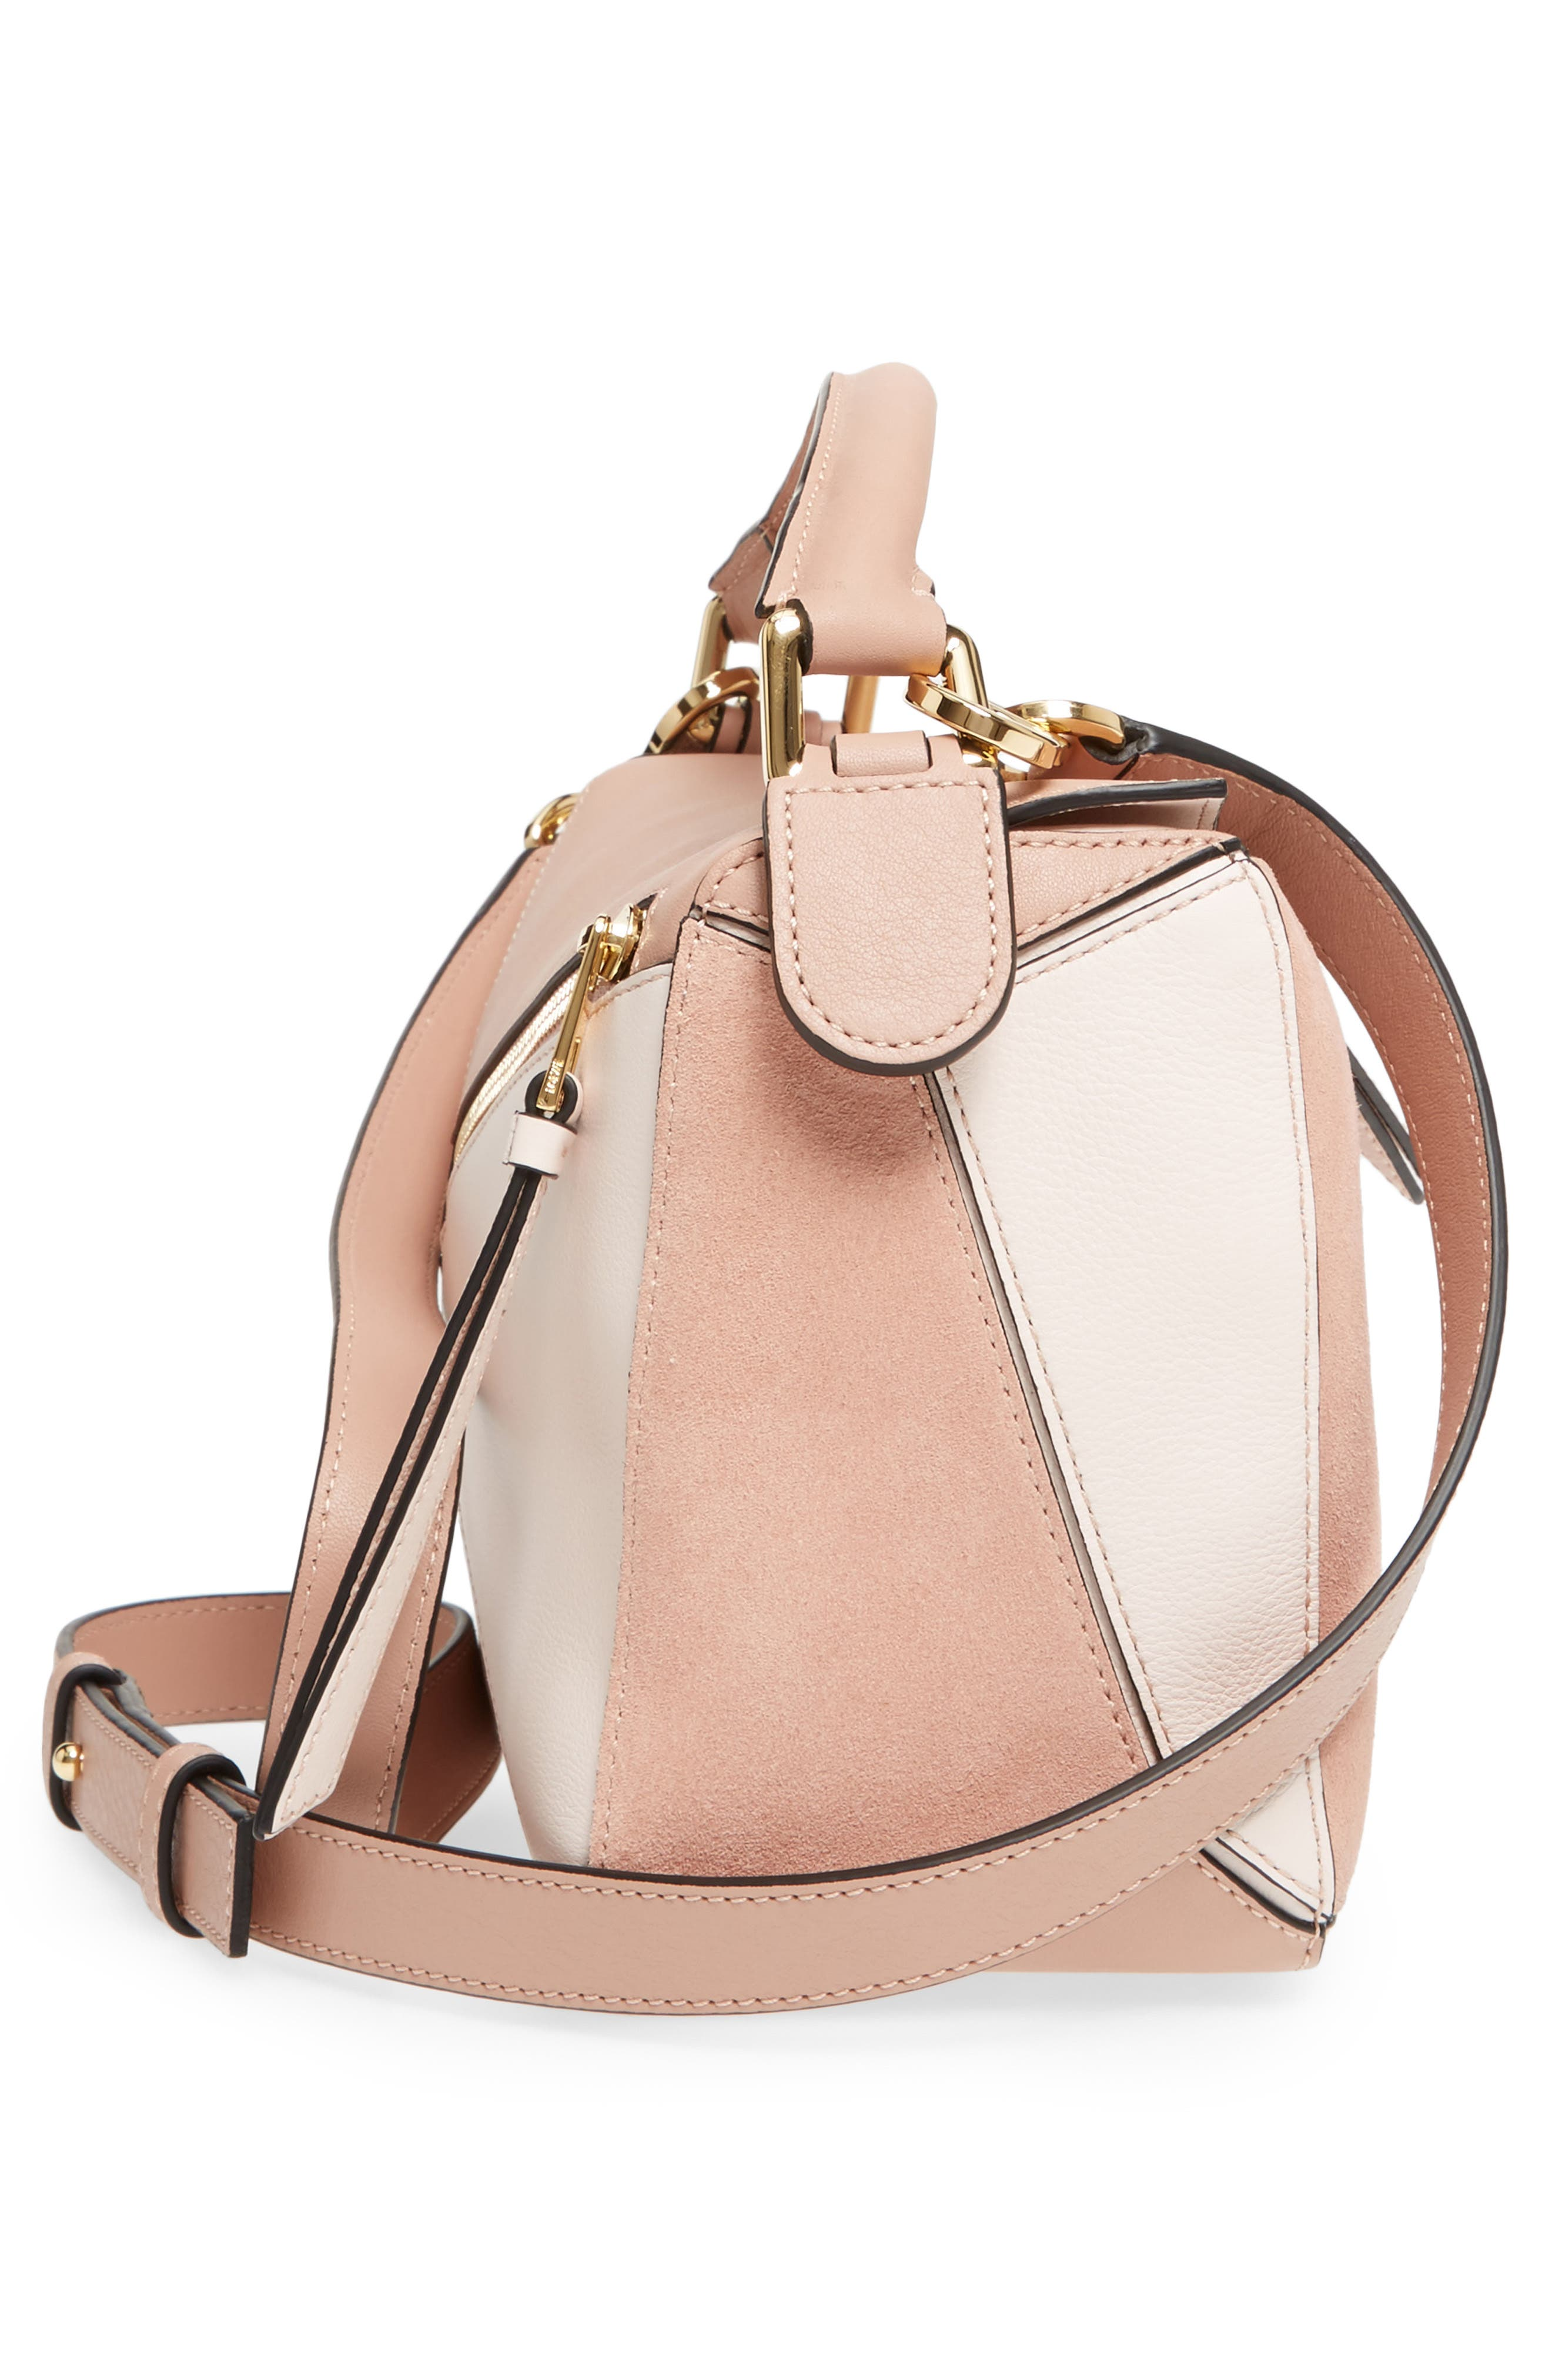 Small Puzzle Bicolor Leather Bag,                             Alternate thumbnail 5, color,                             Blush Multitone